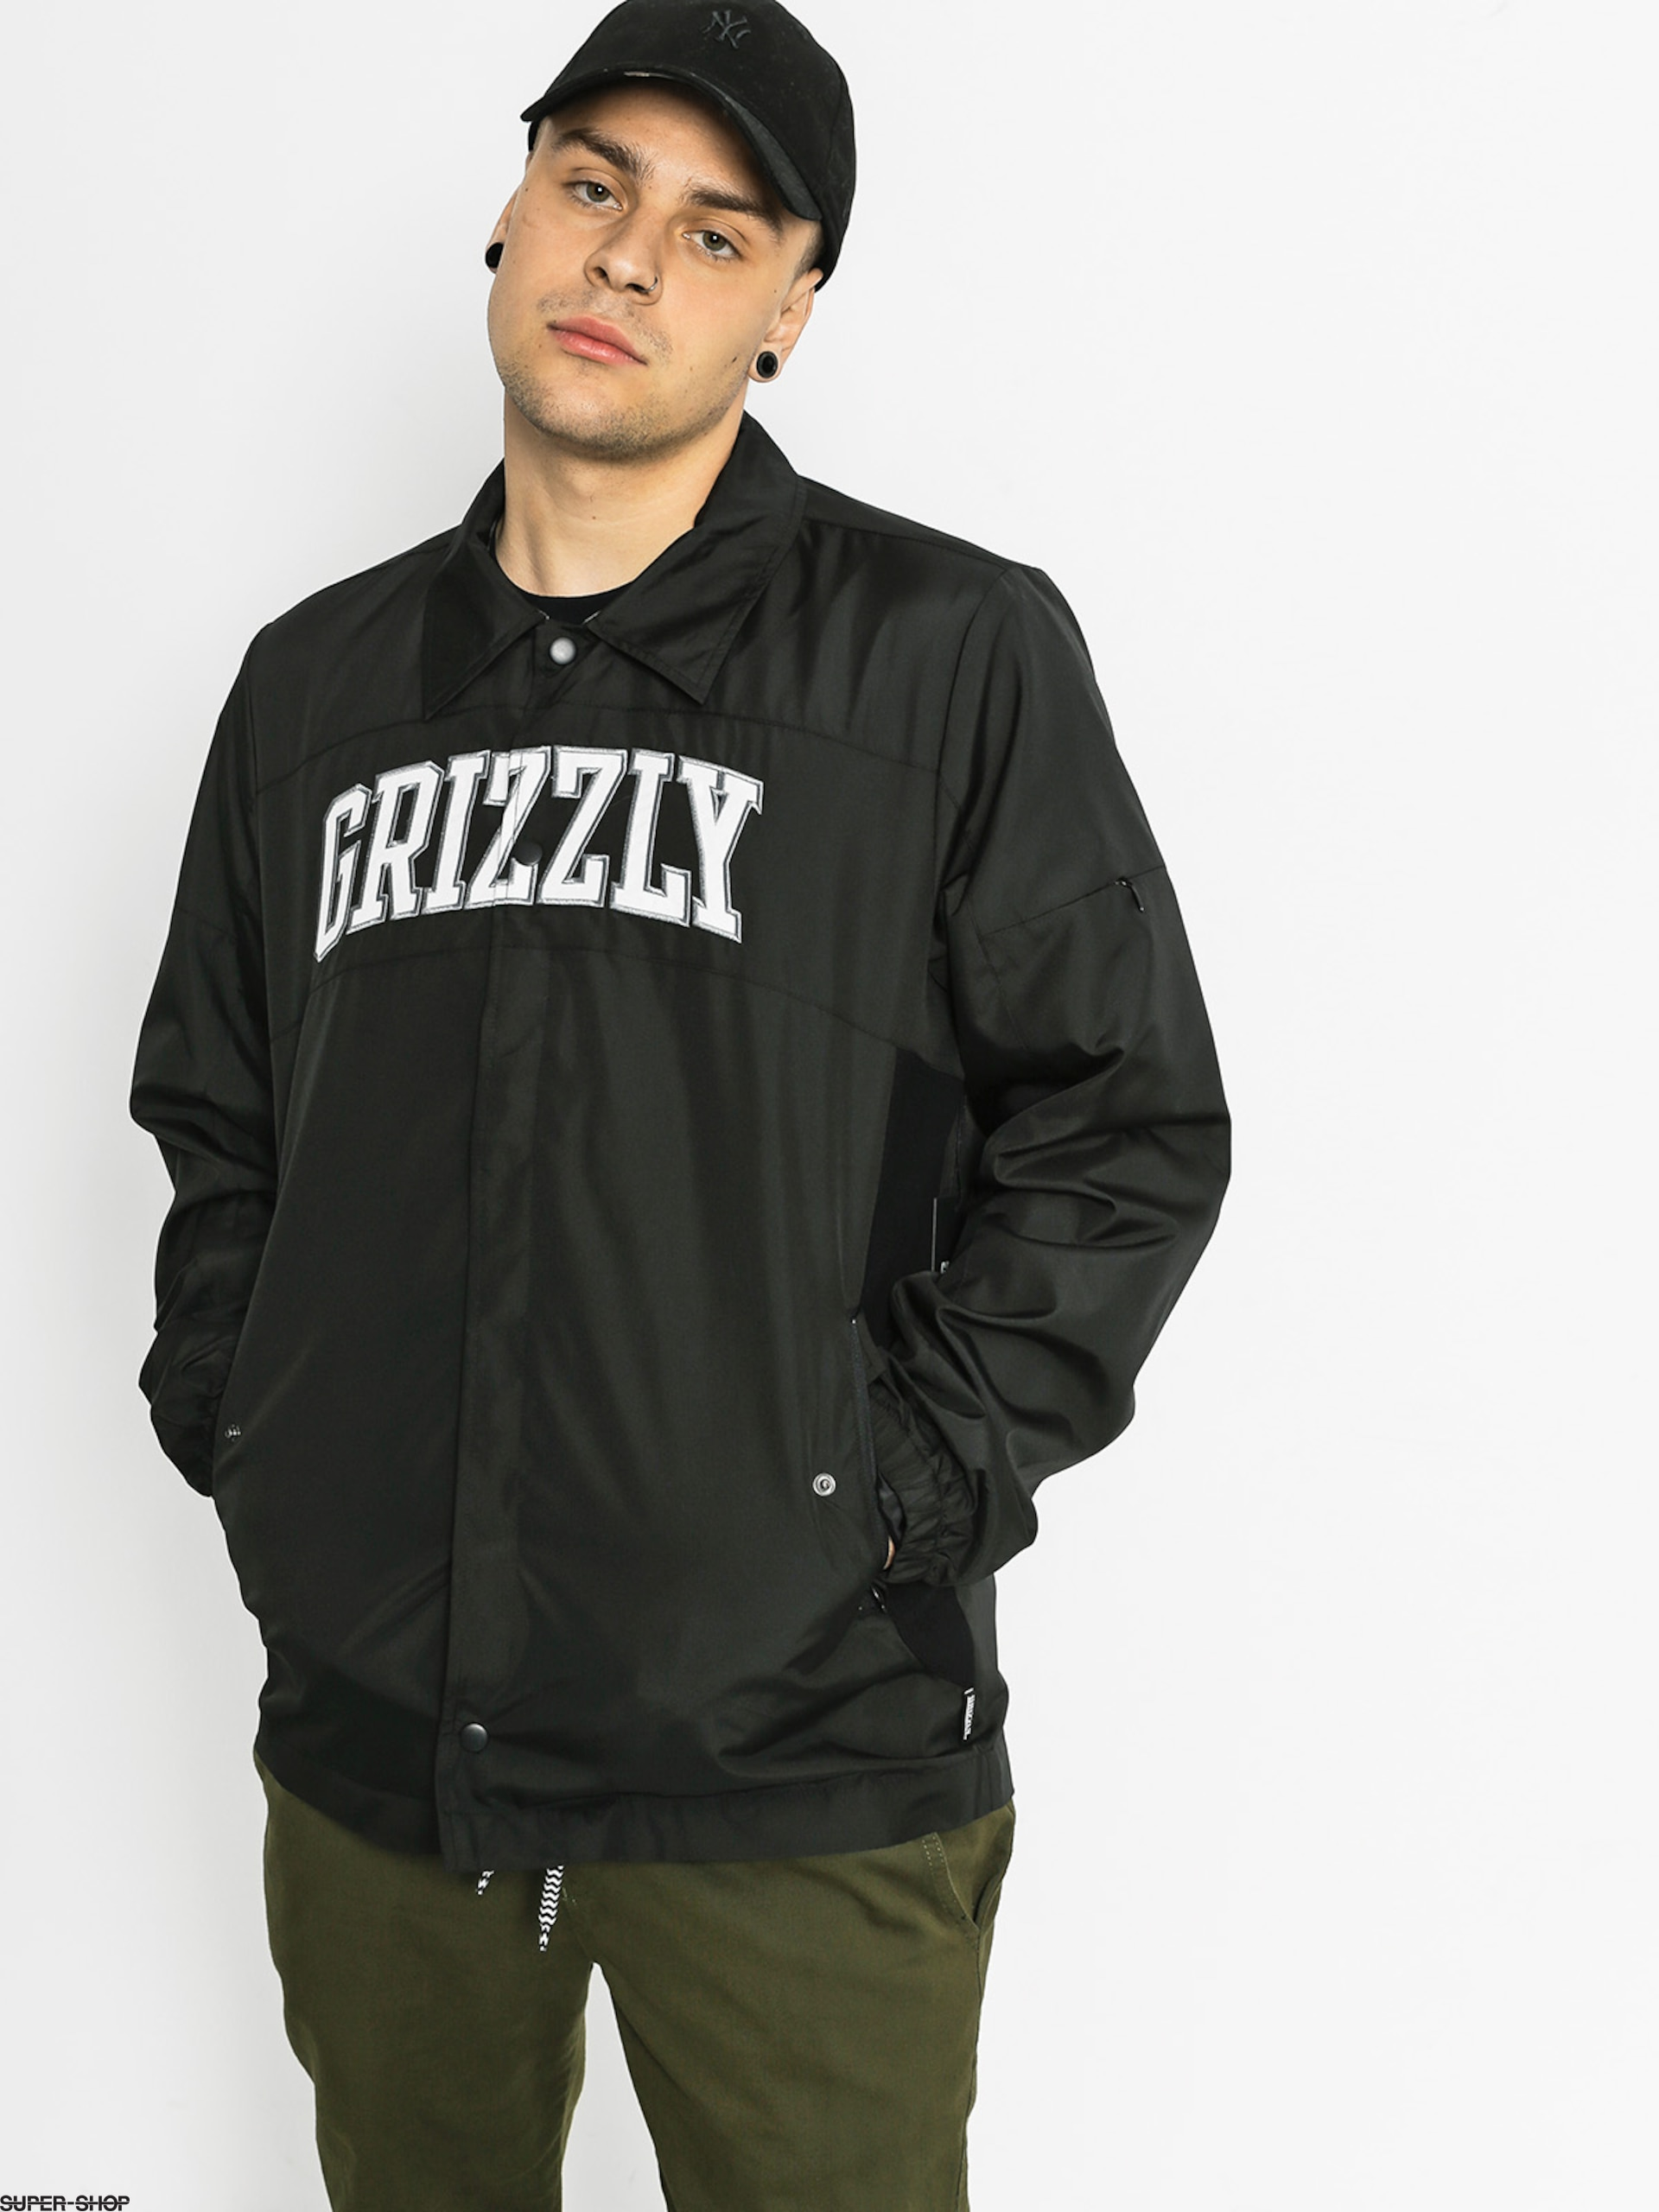 Grizzly Griptape Jacket Pinaccle Coaches (black)